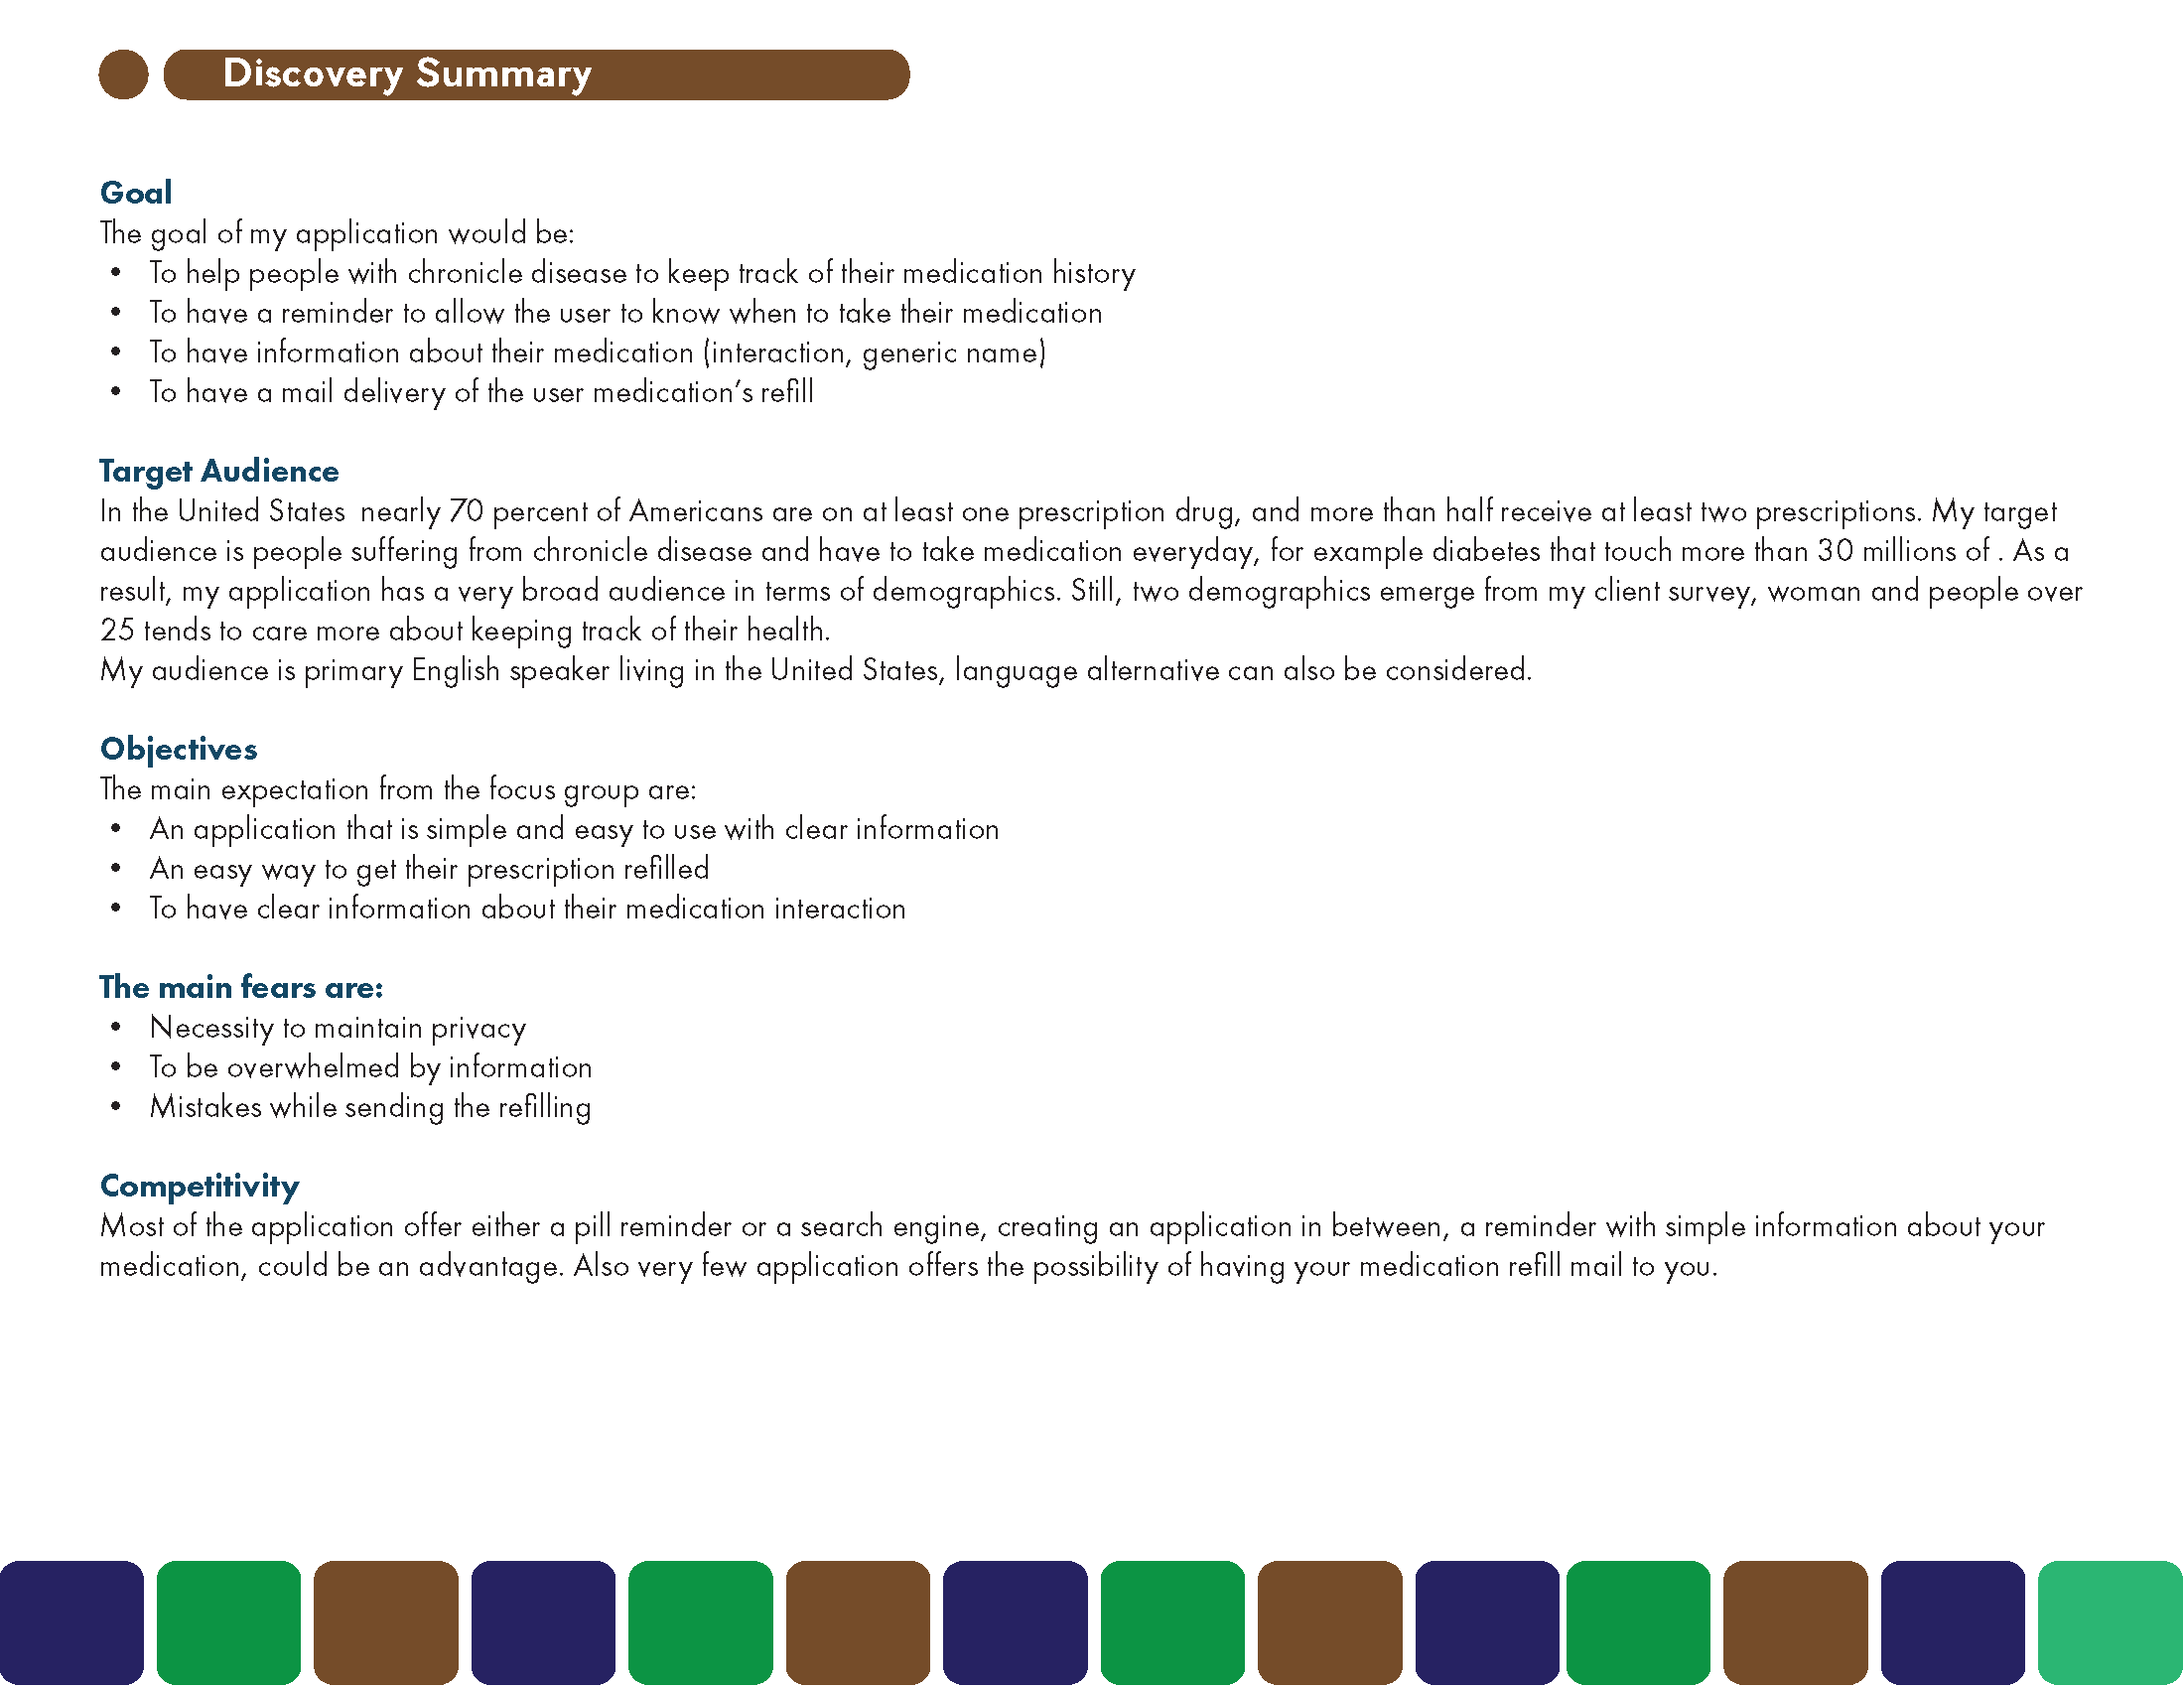 Yeche_assignement5_V2_Page_08.png